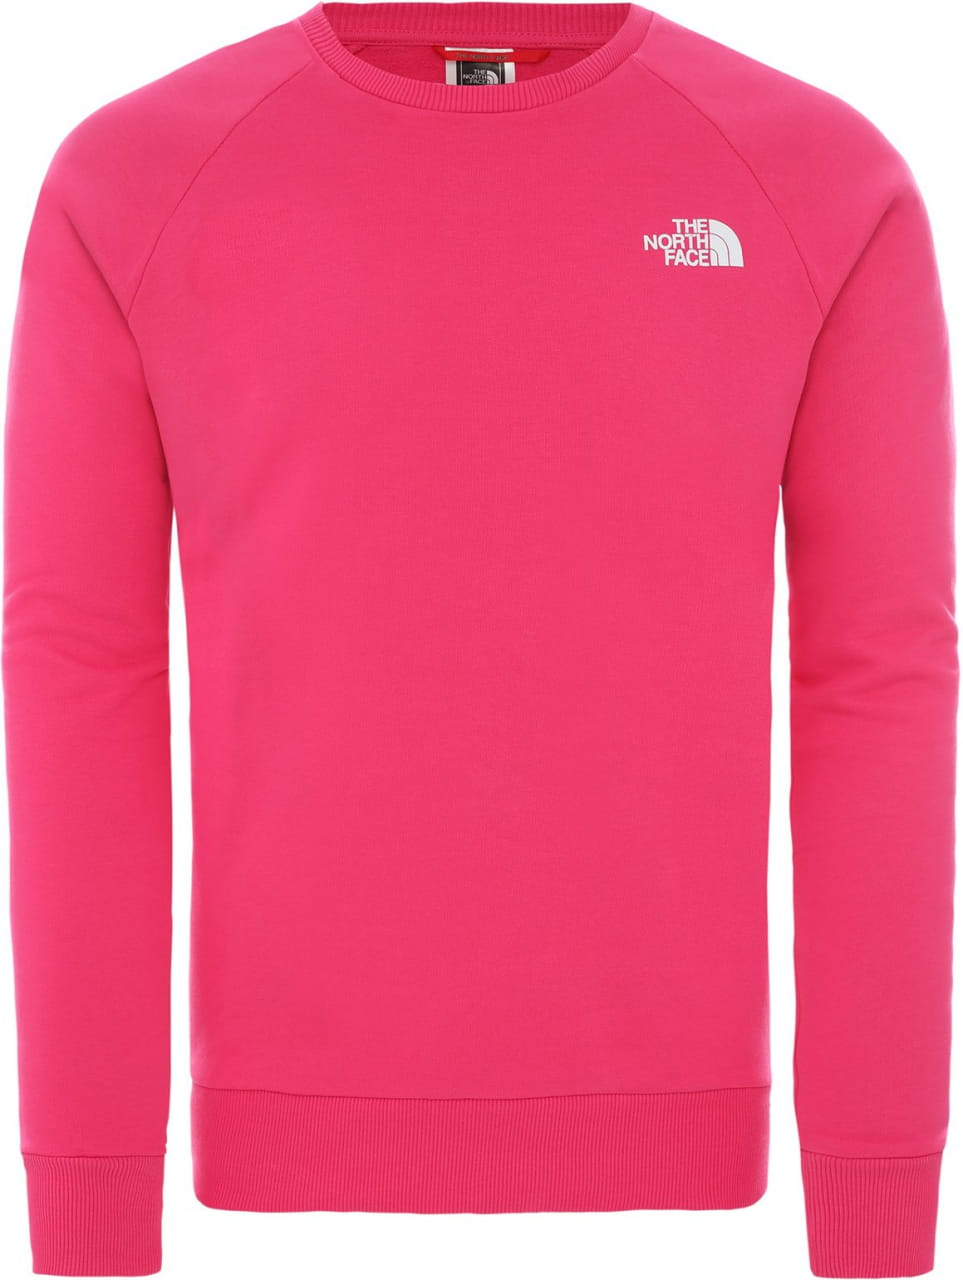 Pánské raglánové tričko The North Face Men's Raglan Redbox Long-Sleeve T-Shirt